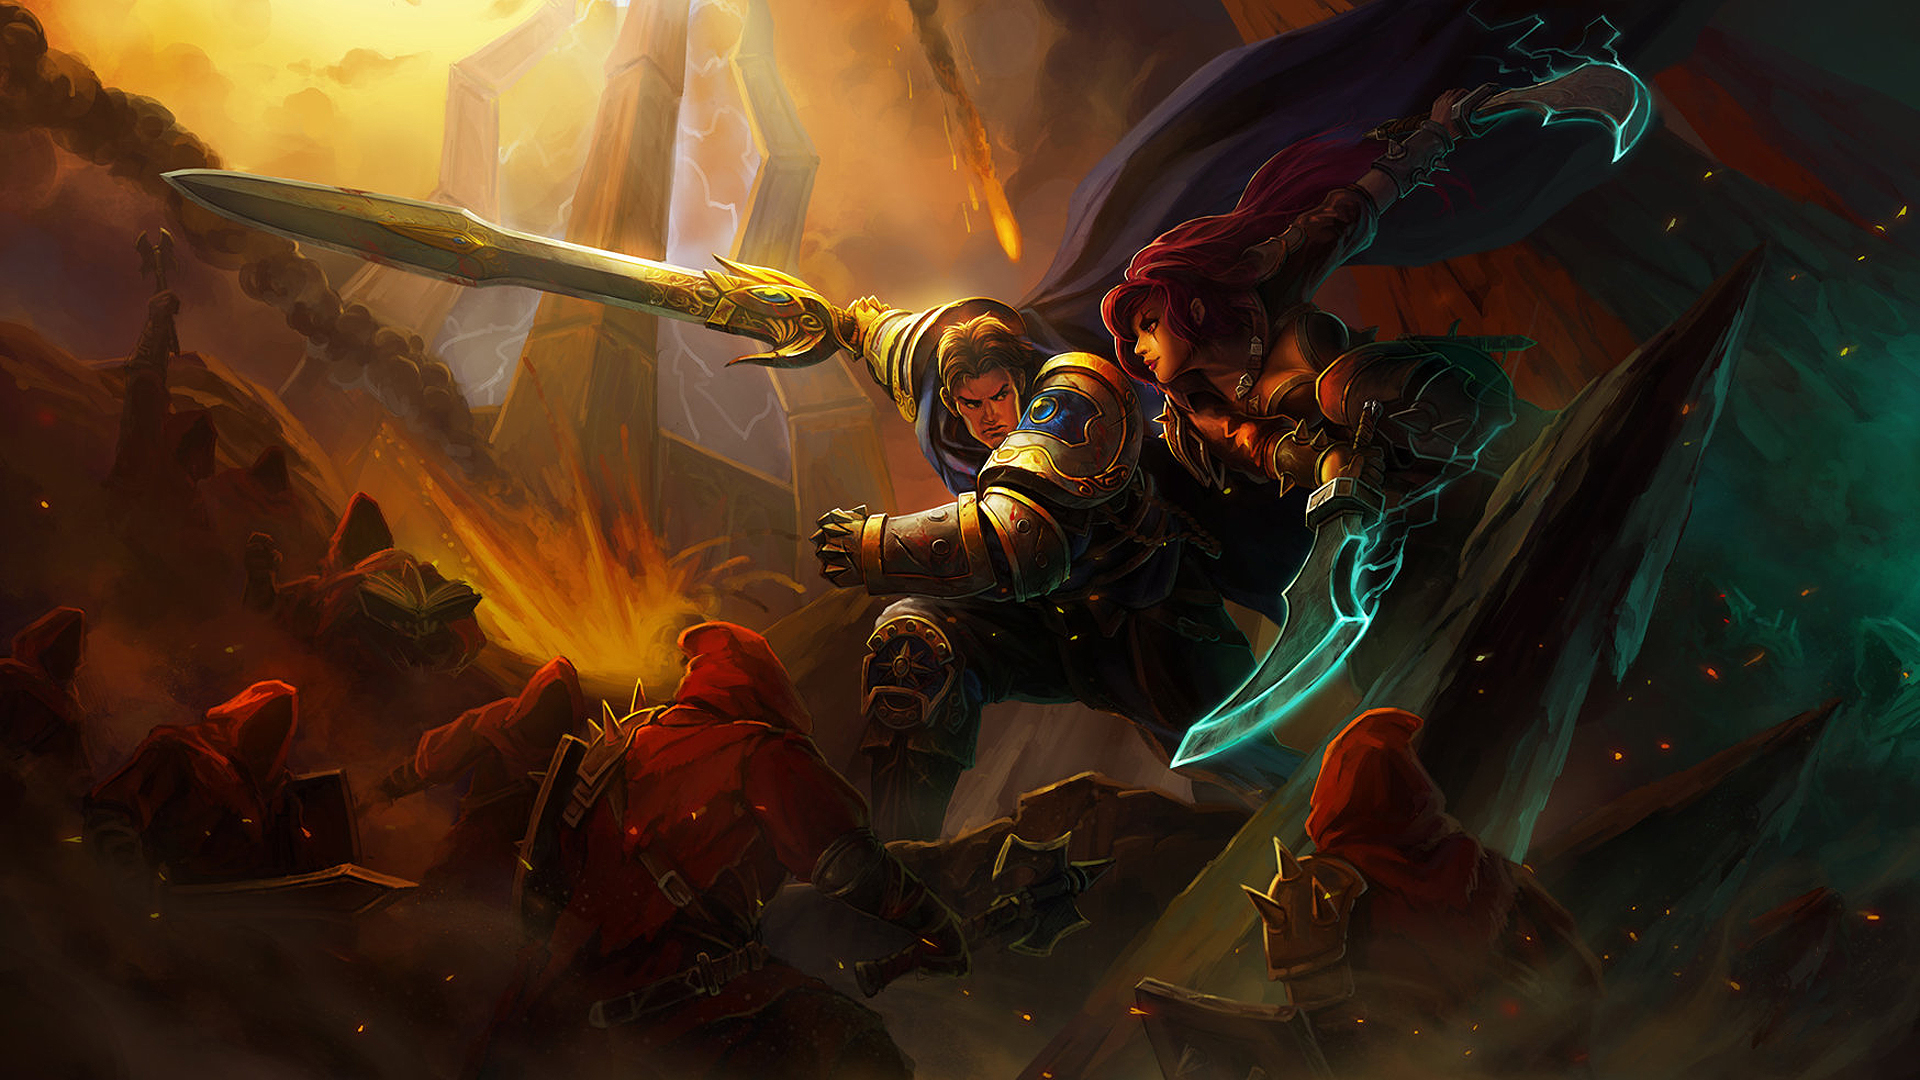 Garen vs Katarina wallpaper